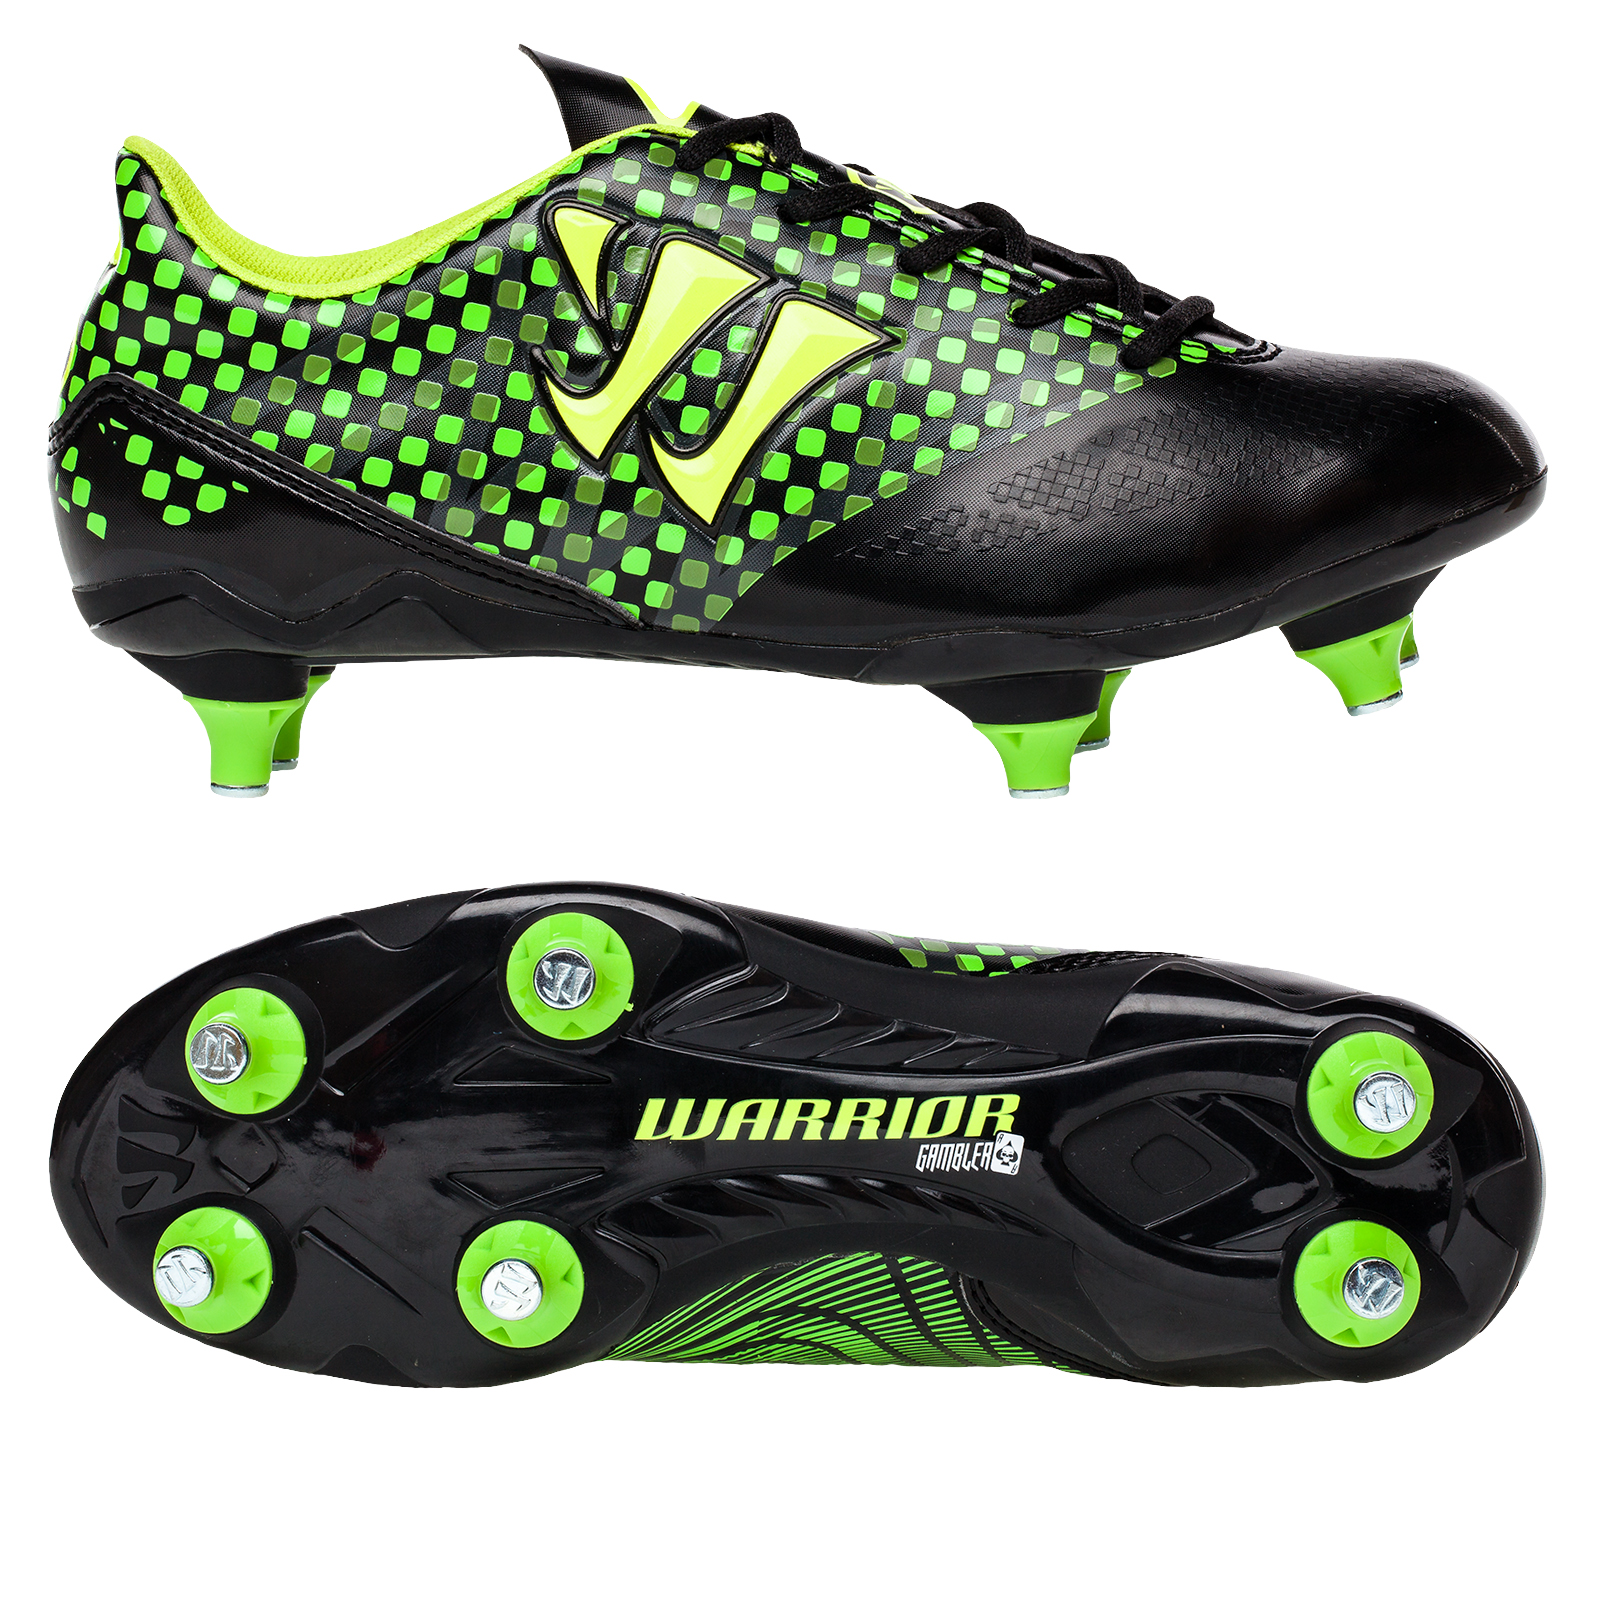 Warrior Sports Gambler Combat Soft Ground Football Boots -Blk/Grn-Junior Black